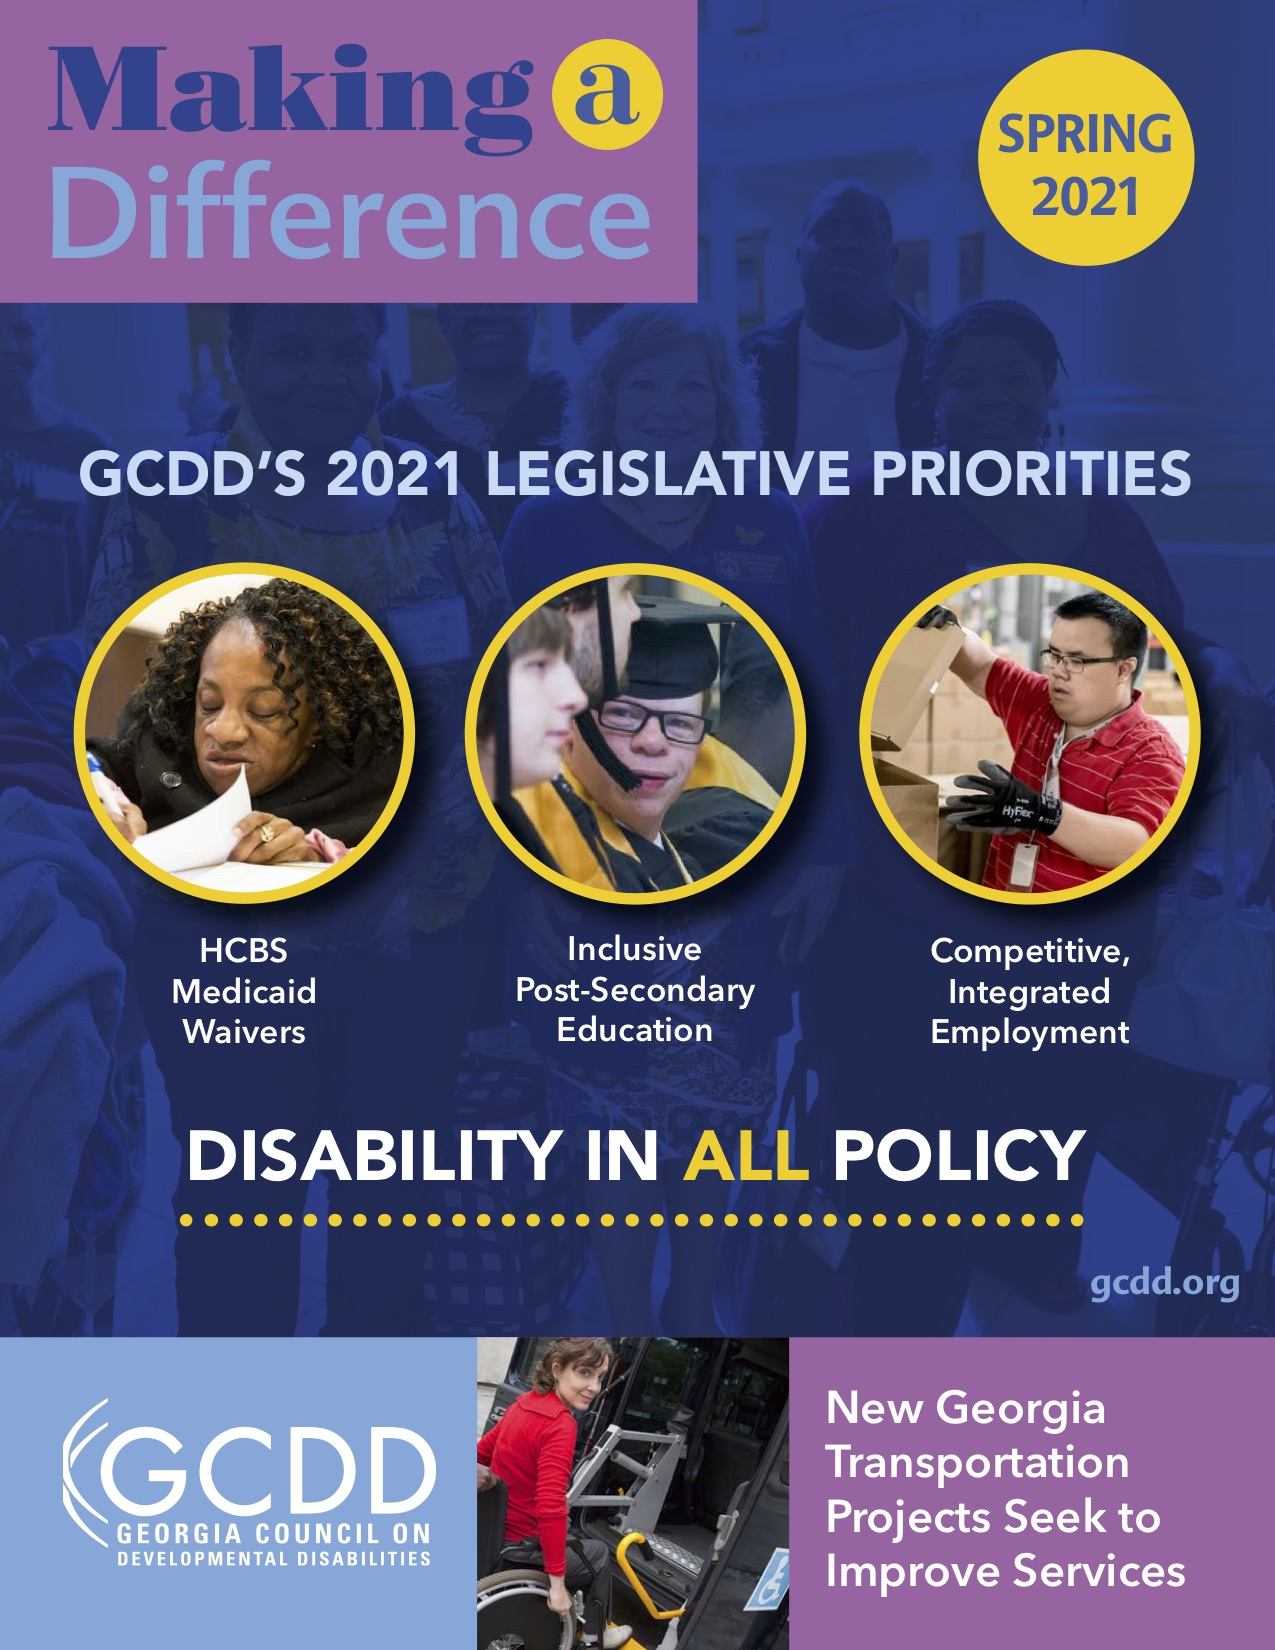 A group of images of people with disabilities representing GCDD's Legislative Priorities